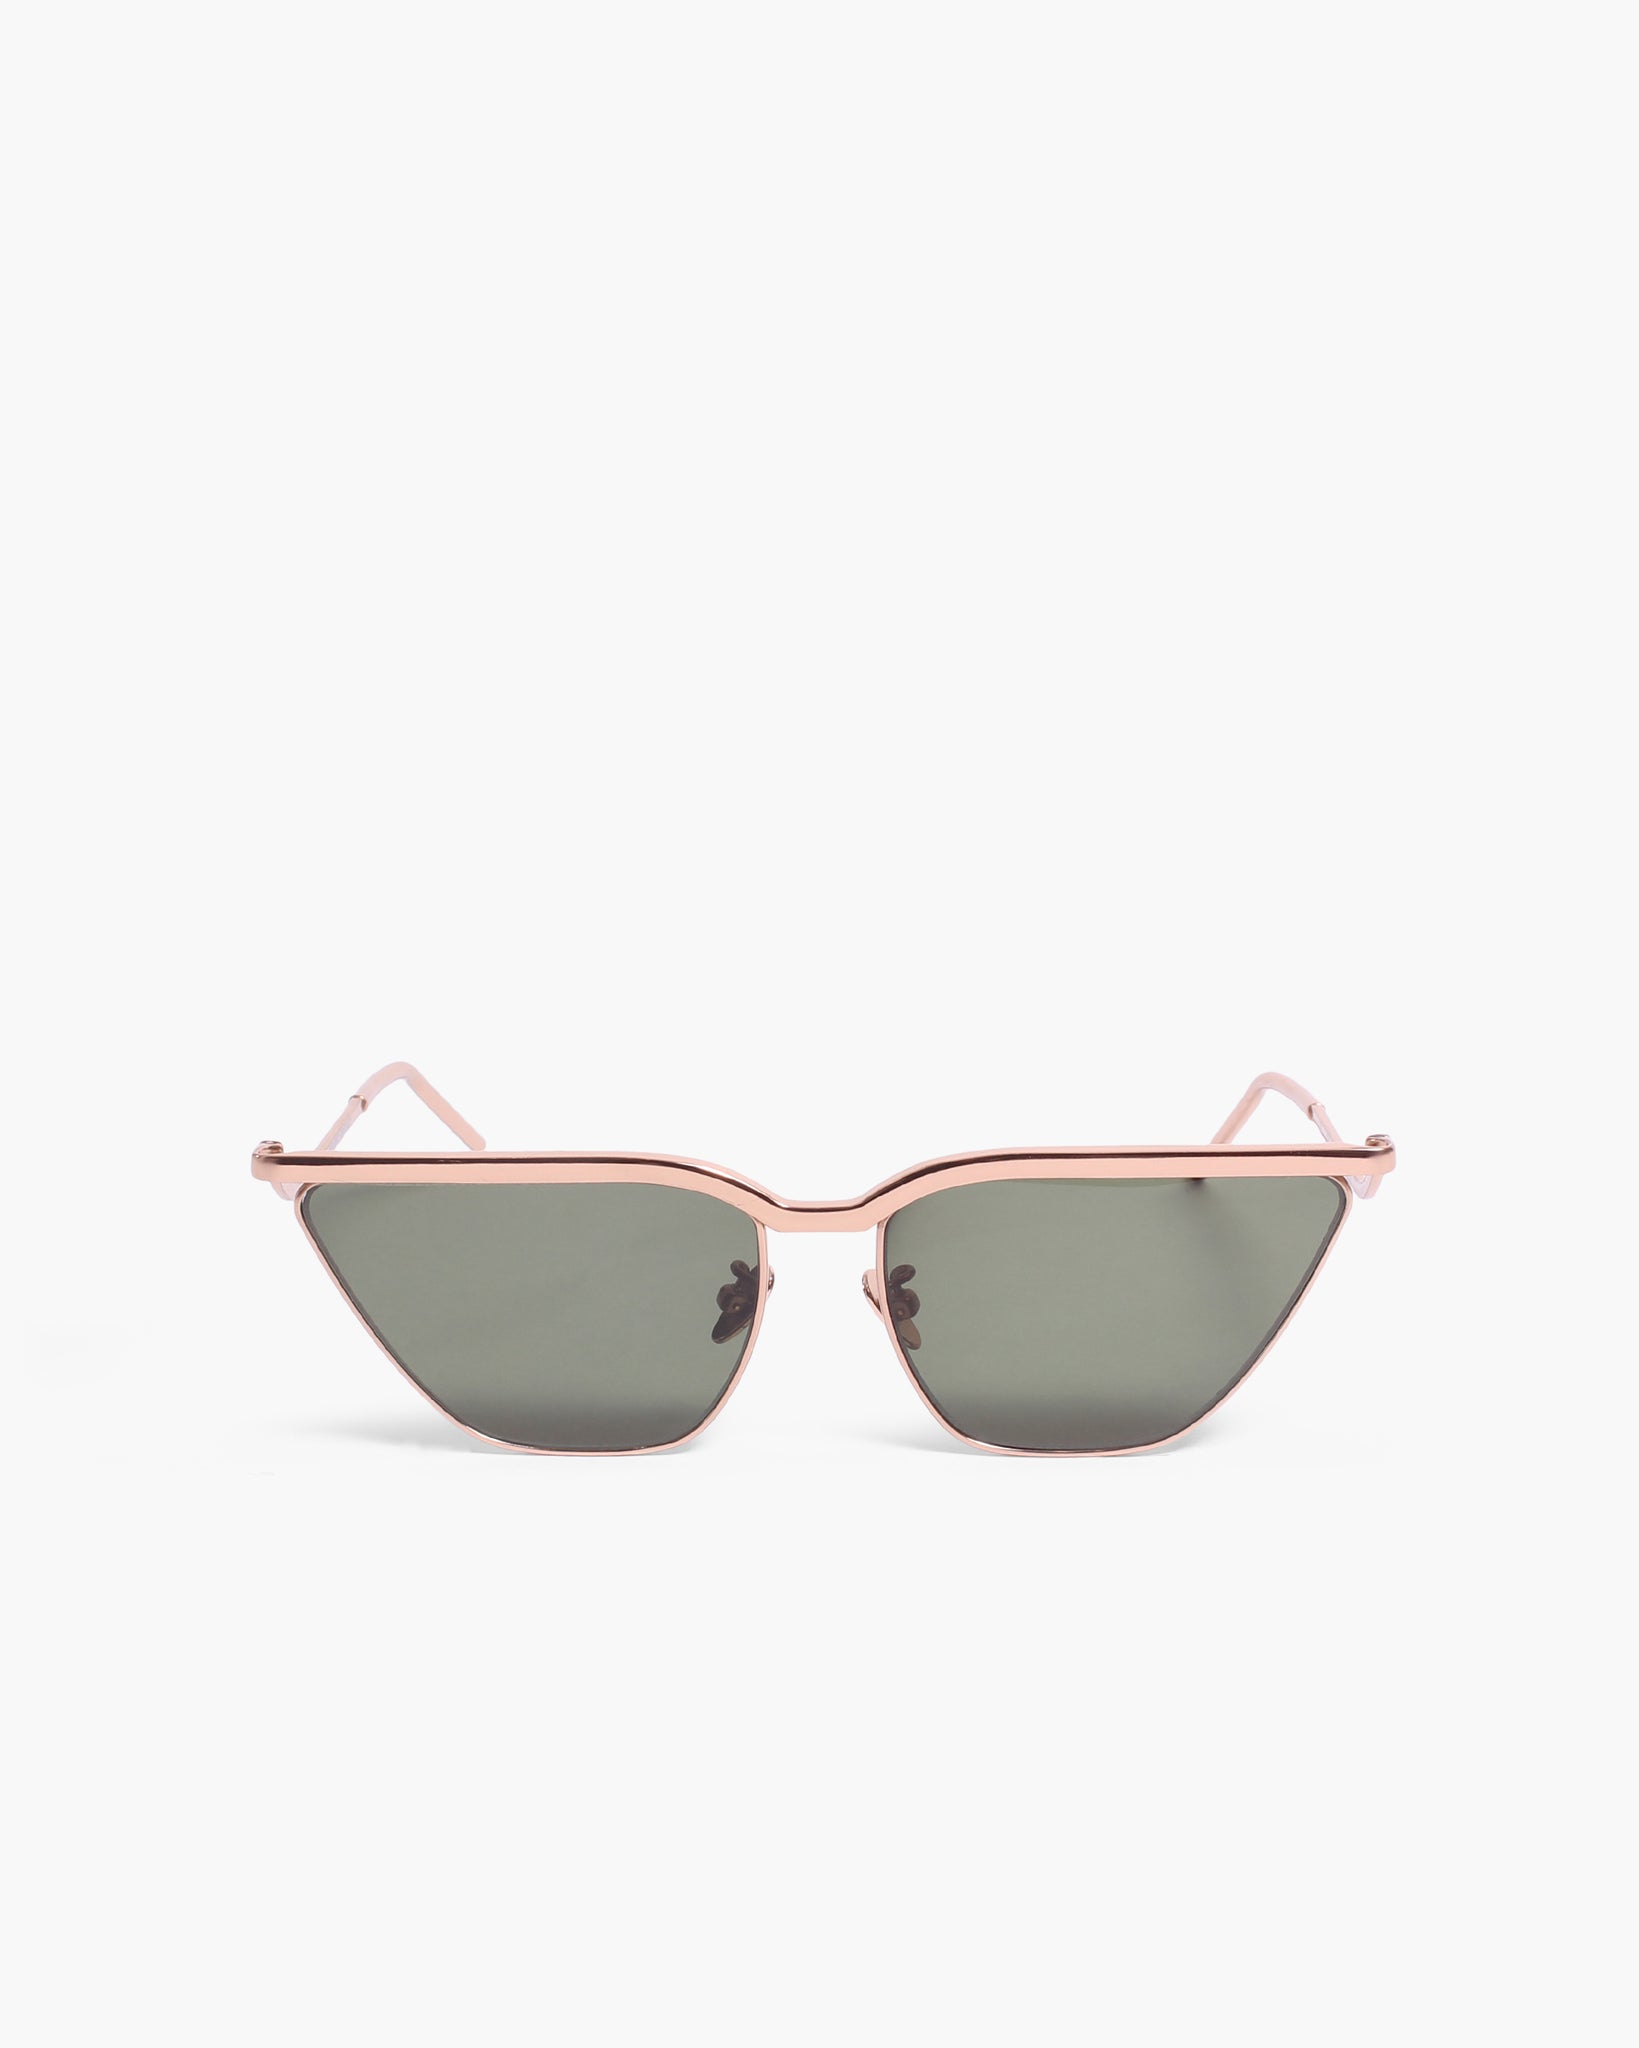 Kira Sunglasses Pink Gold